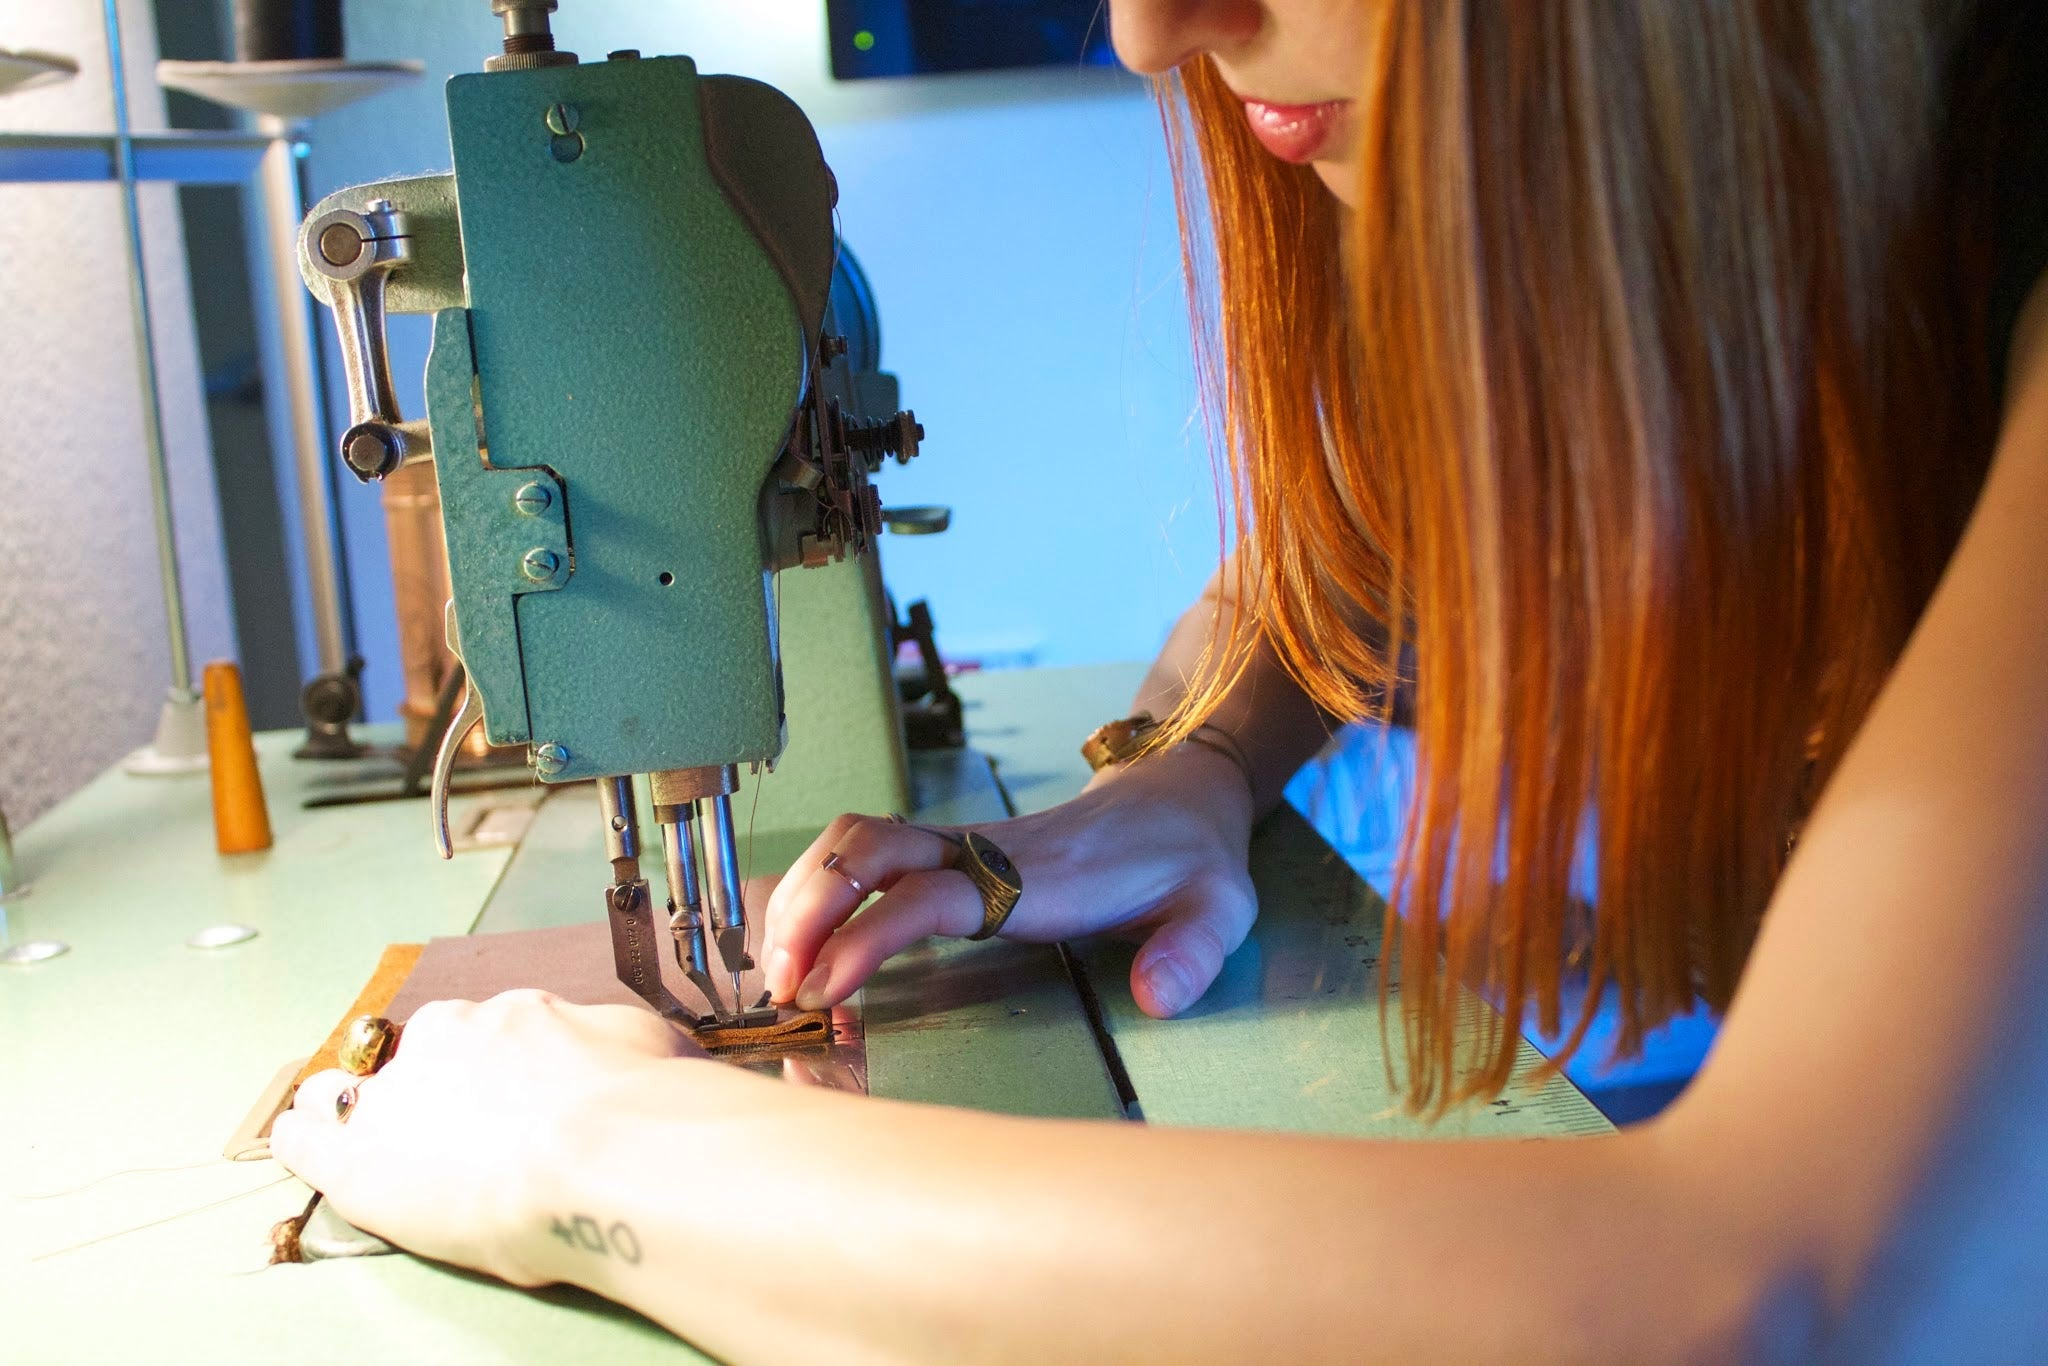 Neva Opet Rachel Riedinger Handcrafted Leather Bags in the Studio